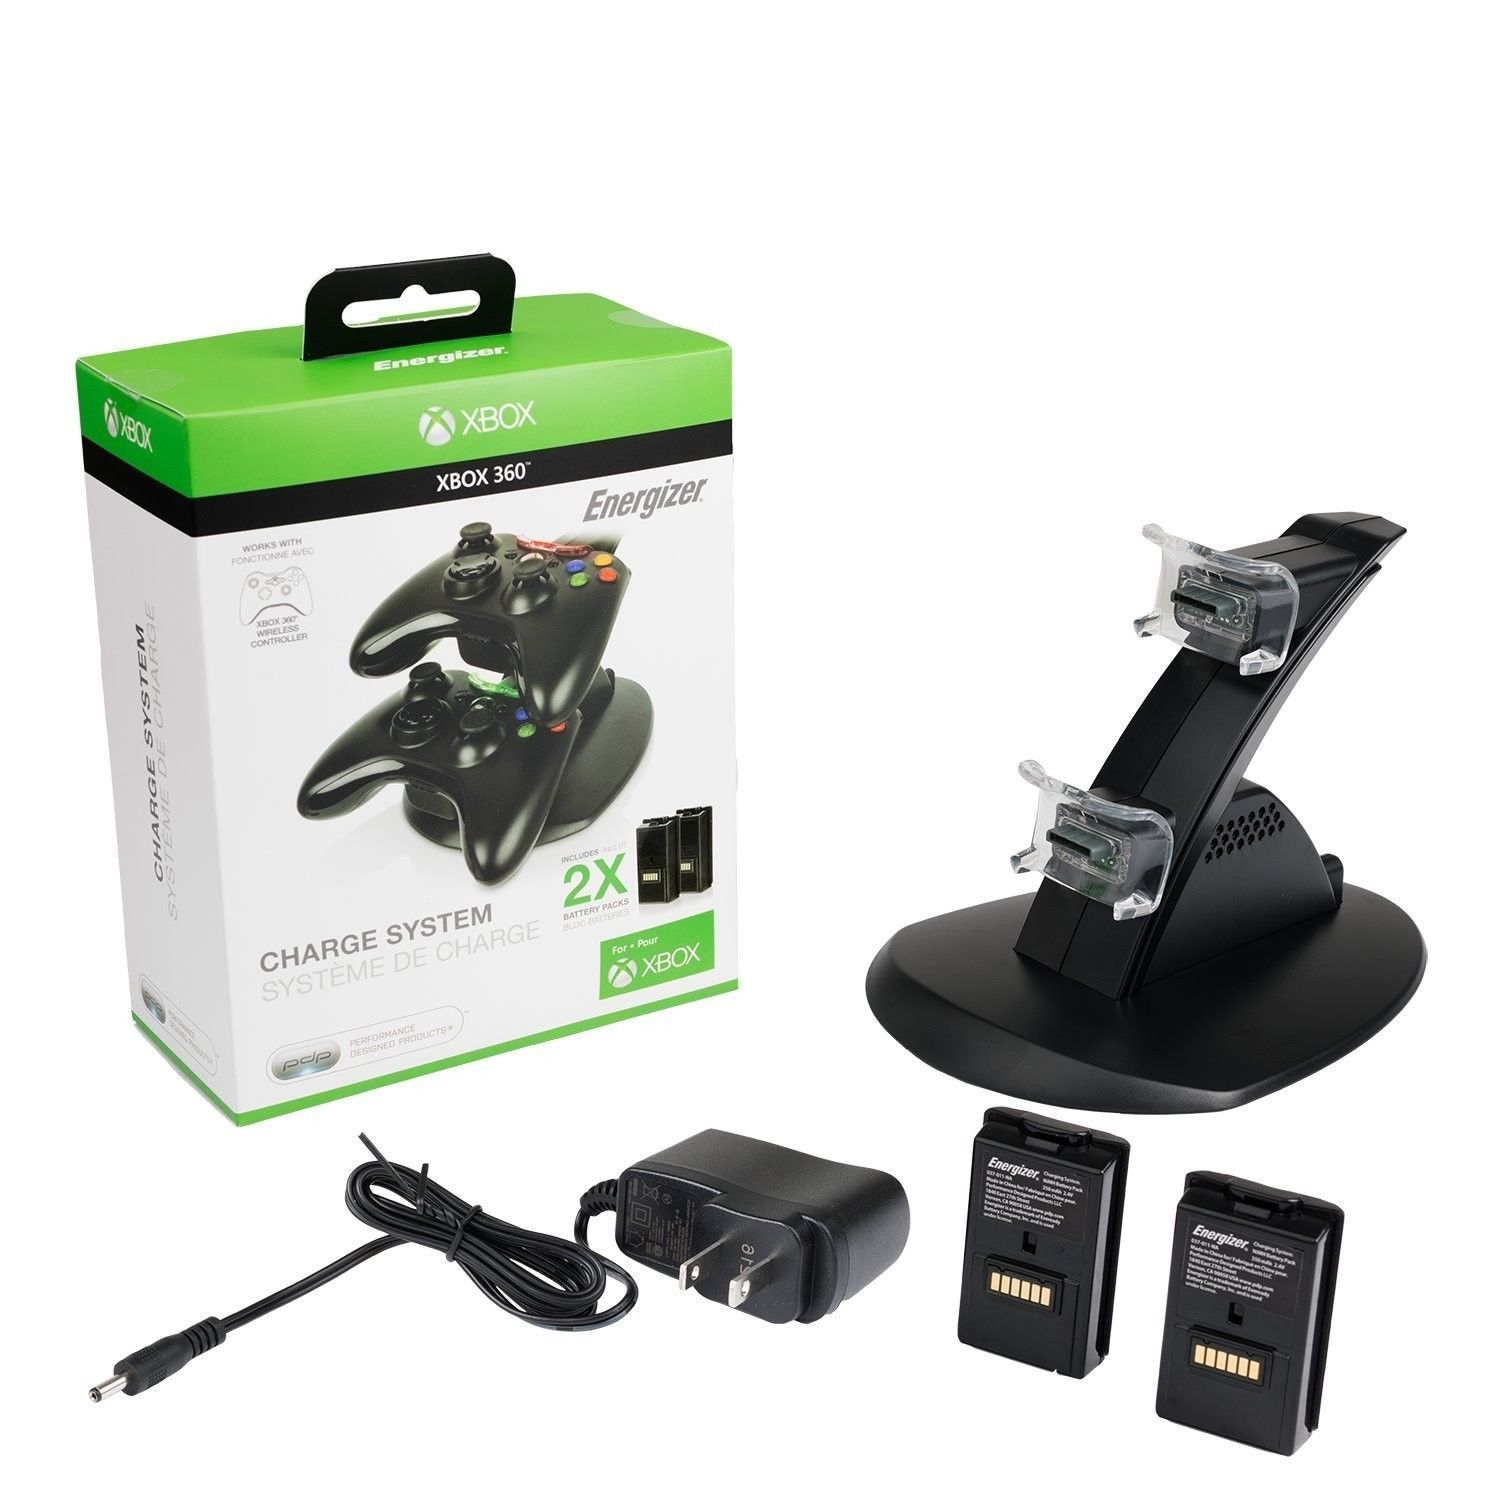 PDP Energizer Xbox 360 Controller Charger 2 and 49 similar items